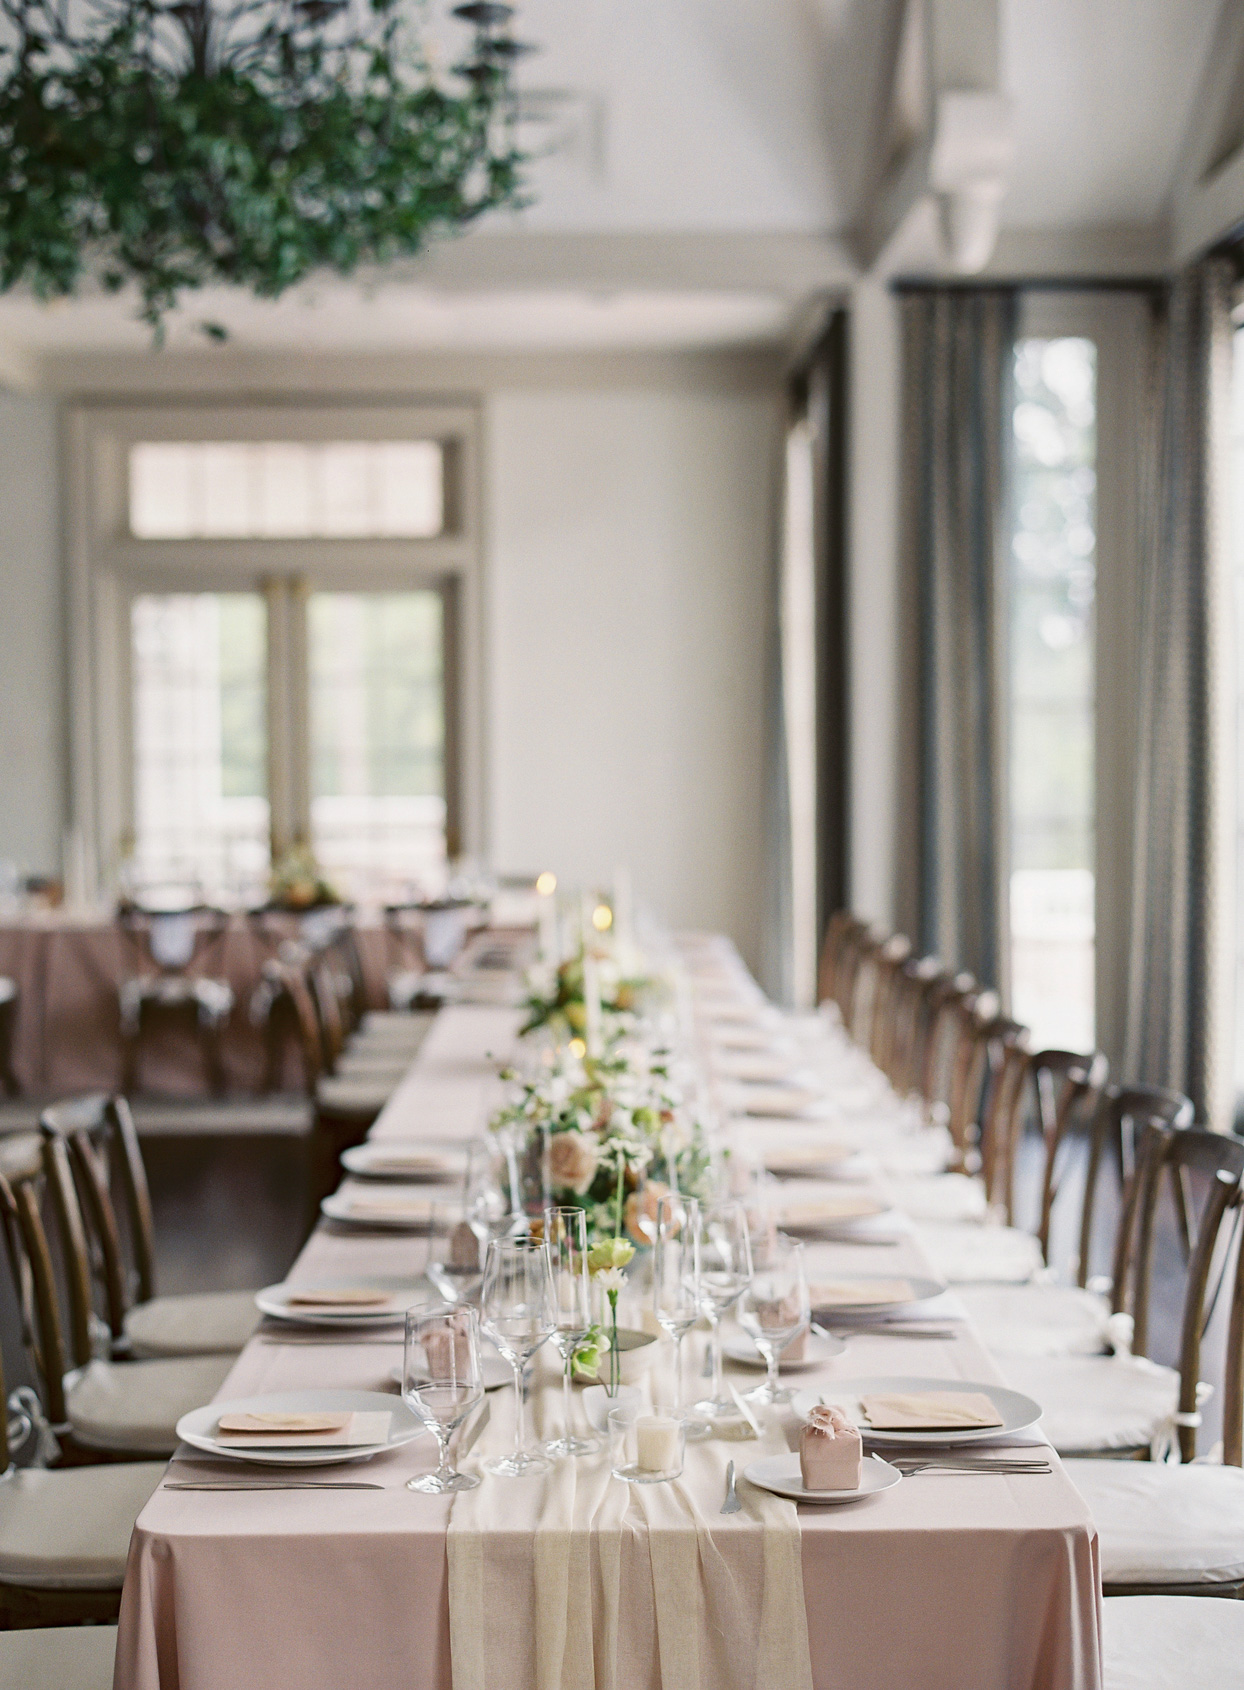 long tables with dusty rose table clothes and centerpieces